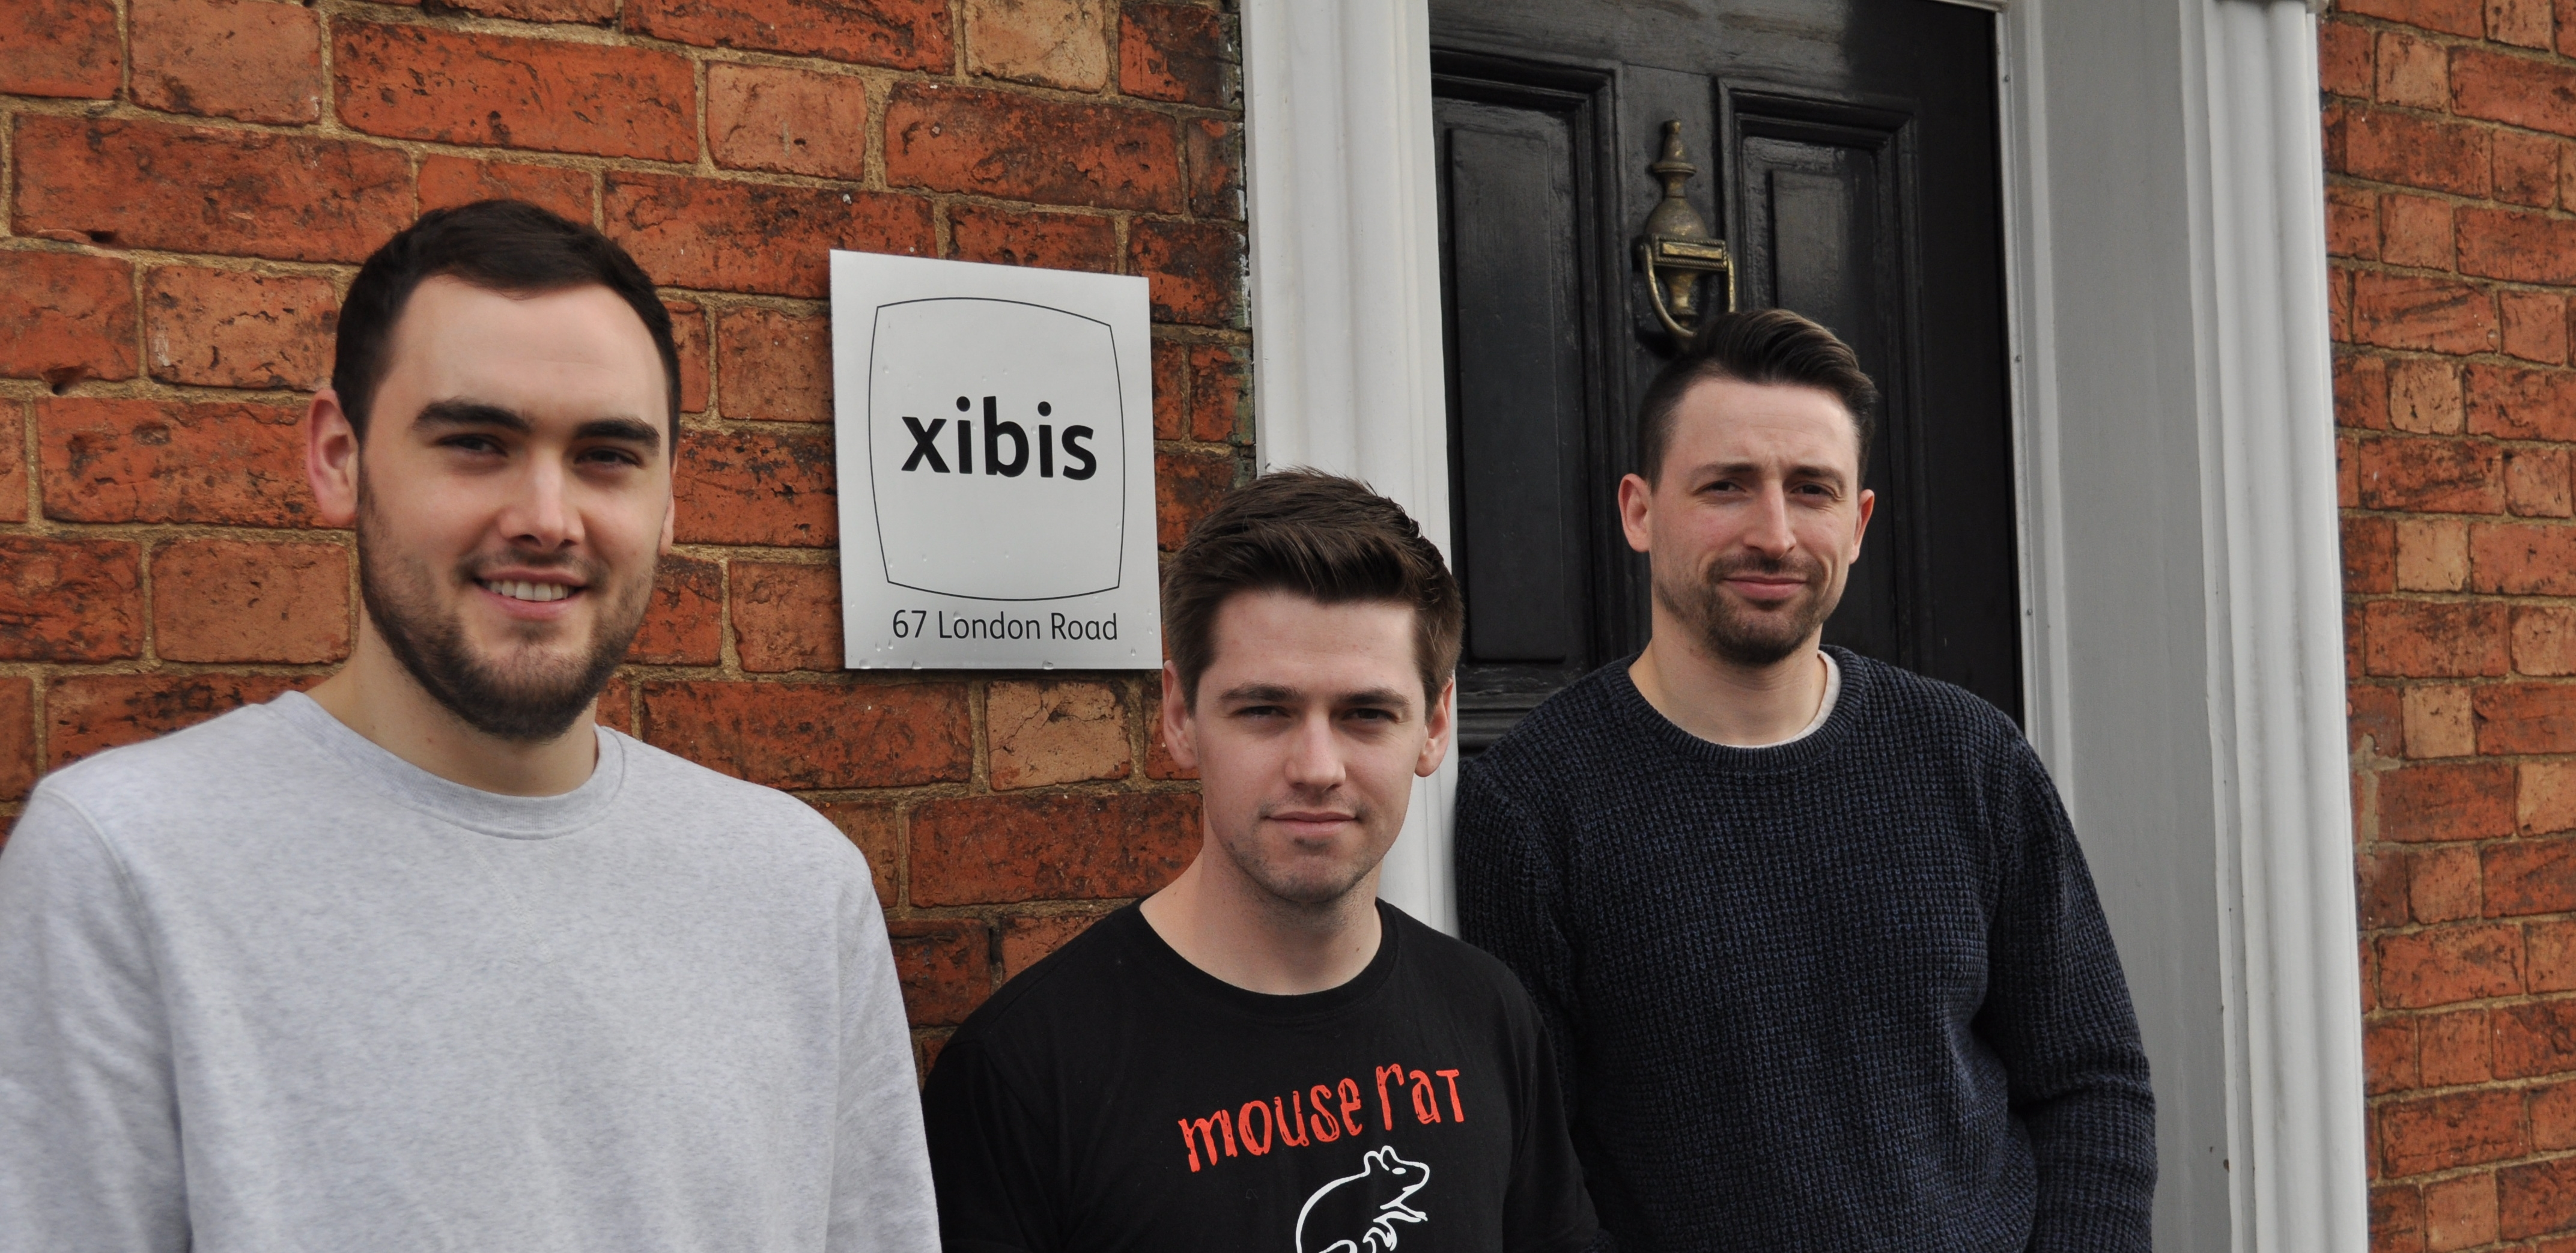 Rhys, Andy and Brad outside the Xibis offices